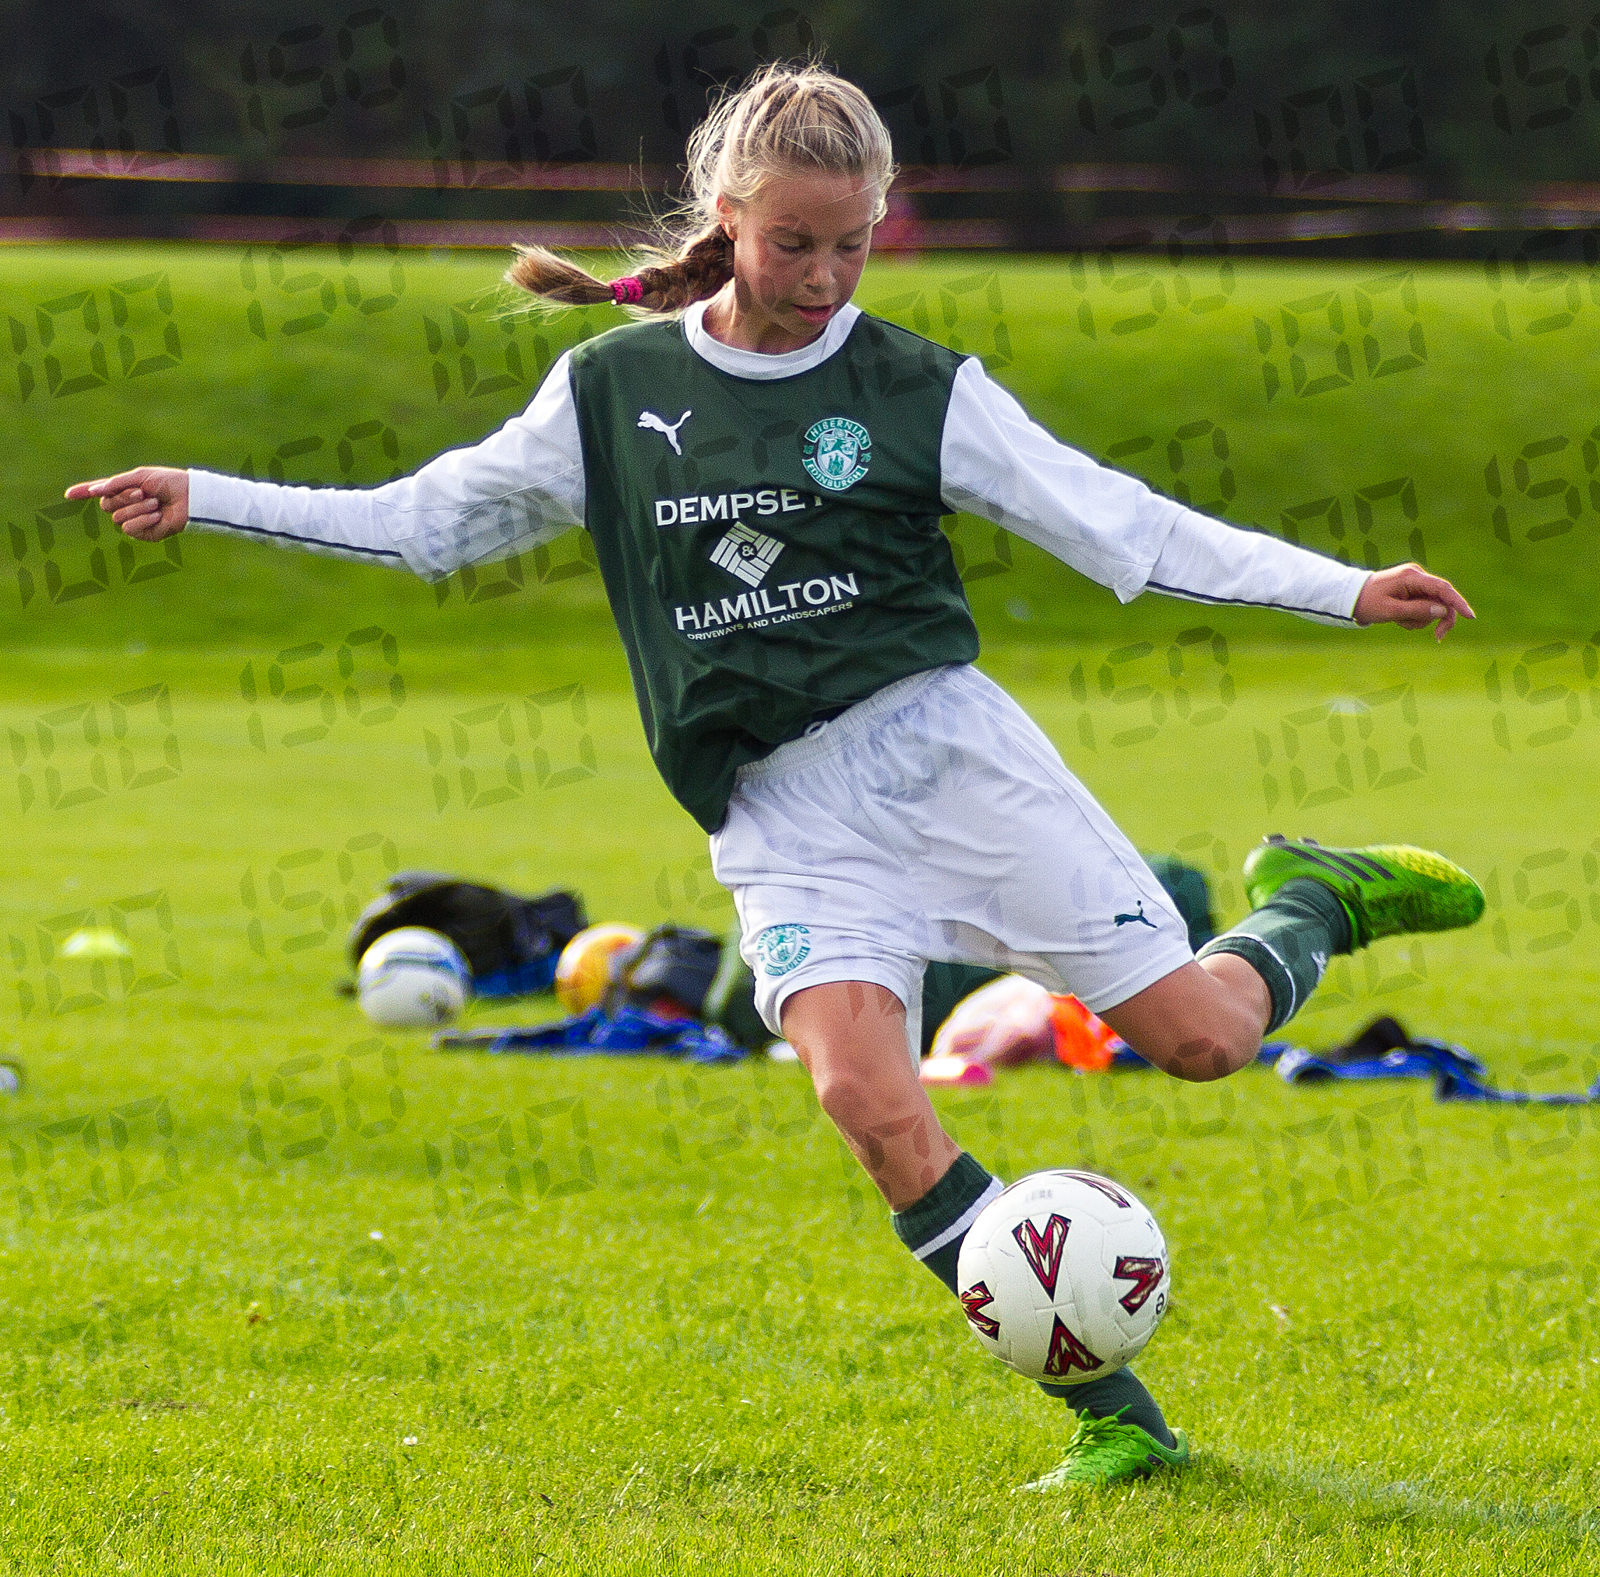 Hibs_v_Hearts_girls_13s-15.jpg